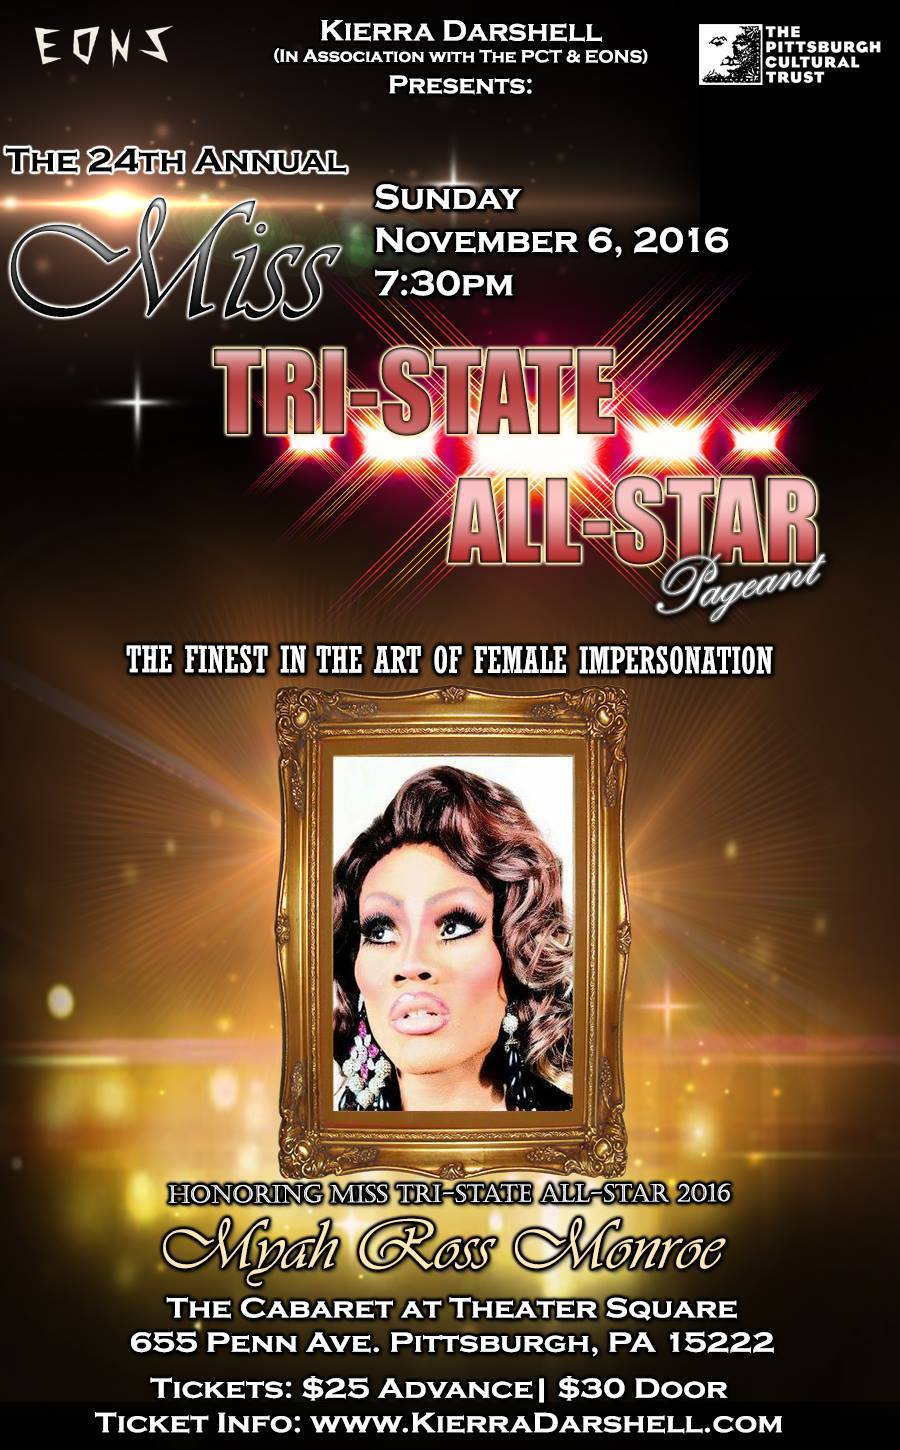 Show Ad | Miss Tri-State All-Star | The Cabaret at Theater Square (Pittsburgh, Pennsylvania) | 11/6/2016